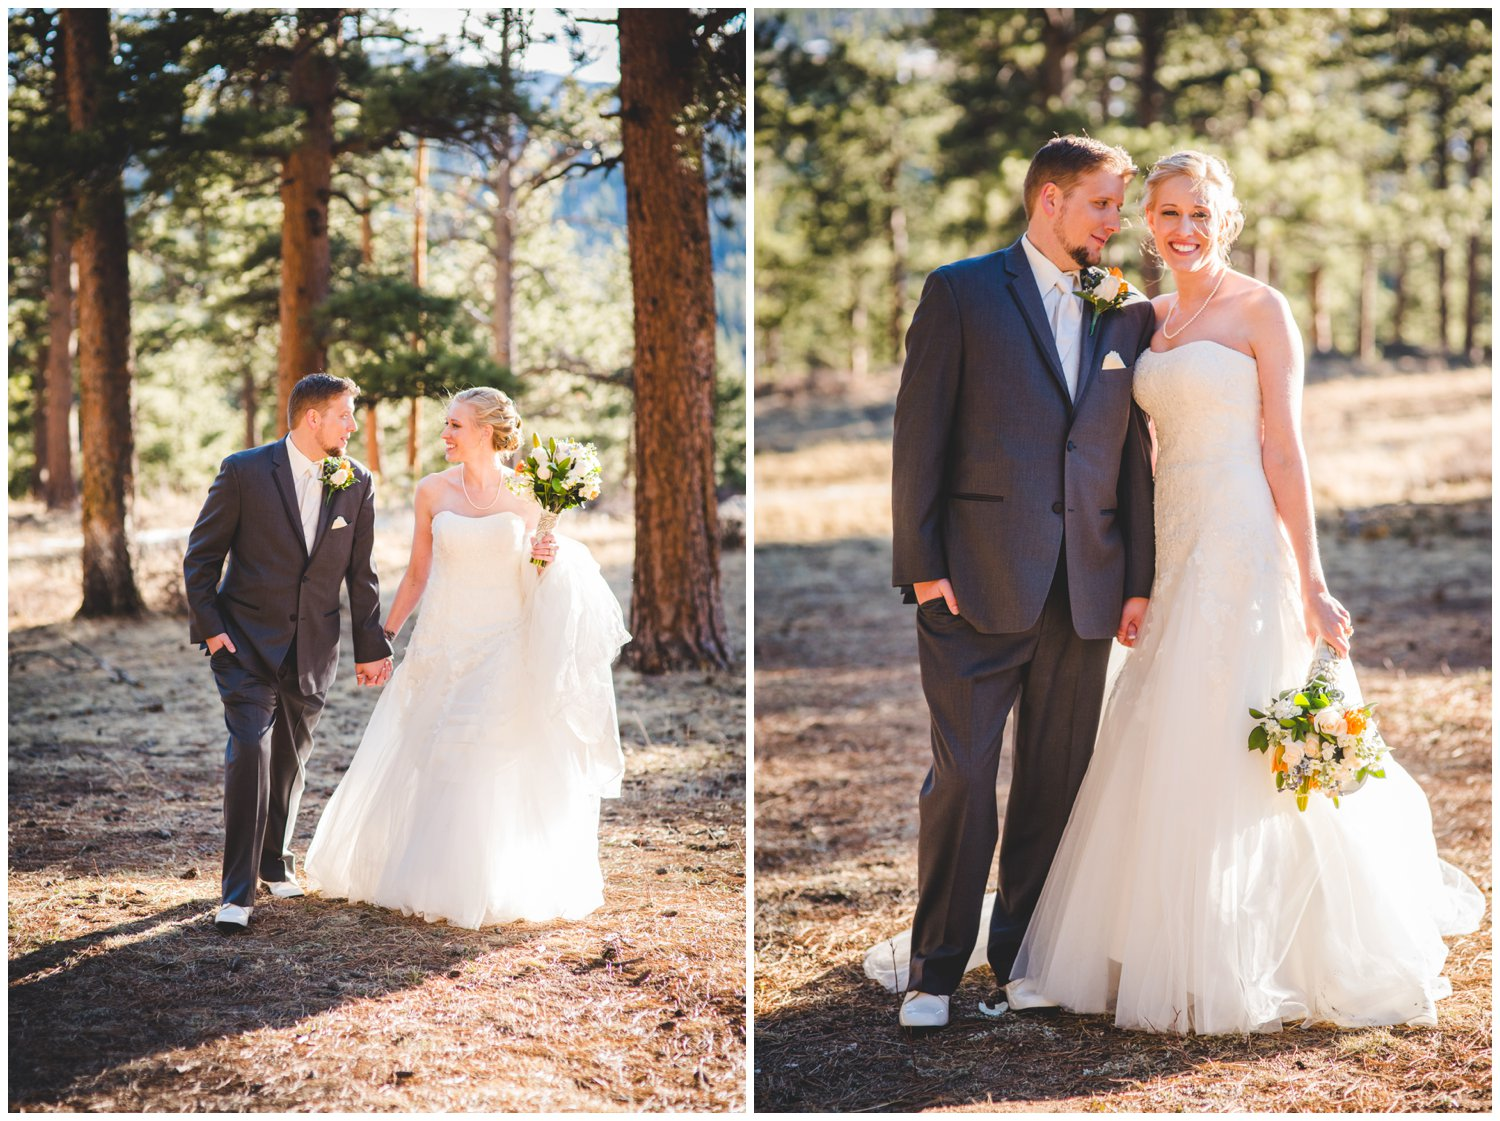 Bride and groom photos in sunny Pine trees